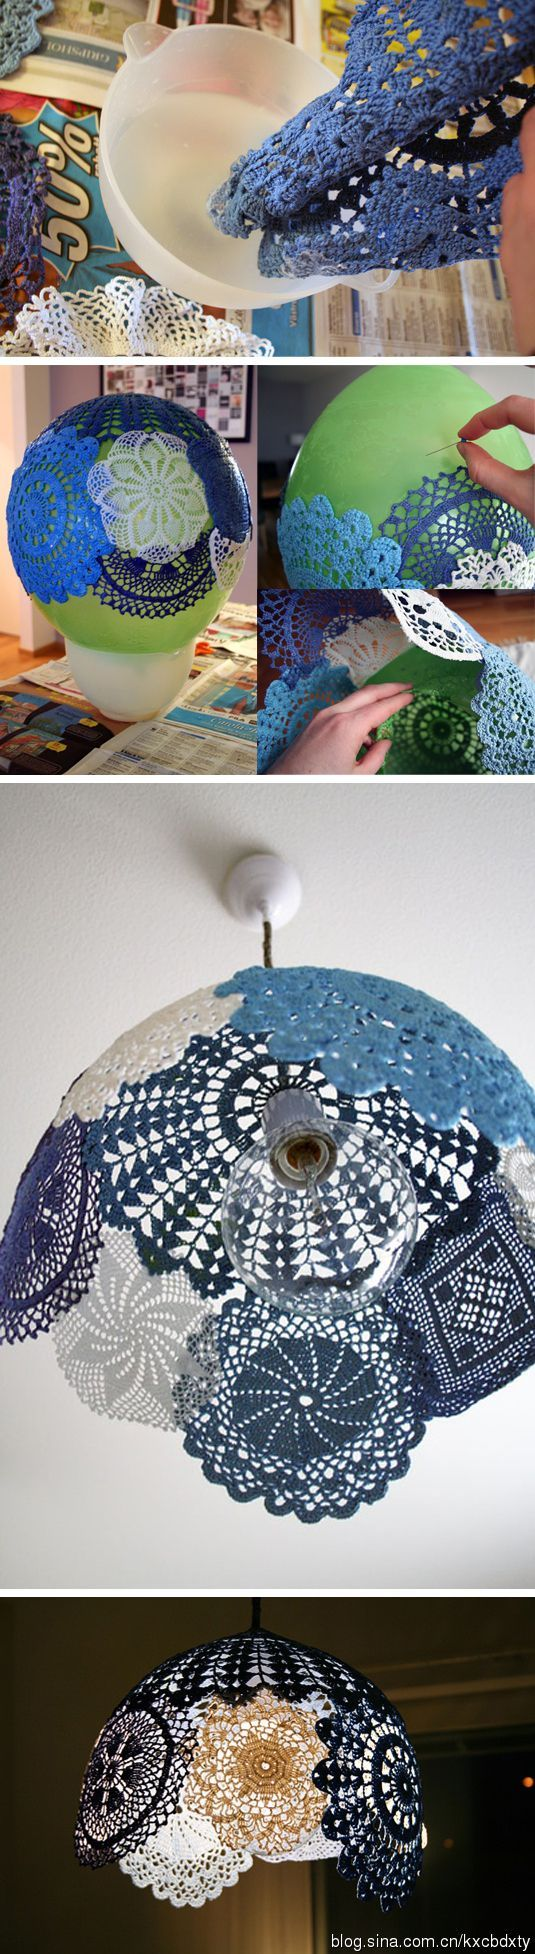 DIY Mediterranean-Style Lace Lamp DIY Projects